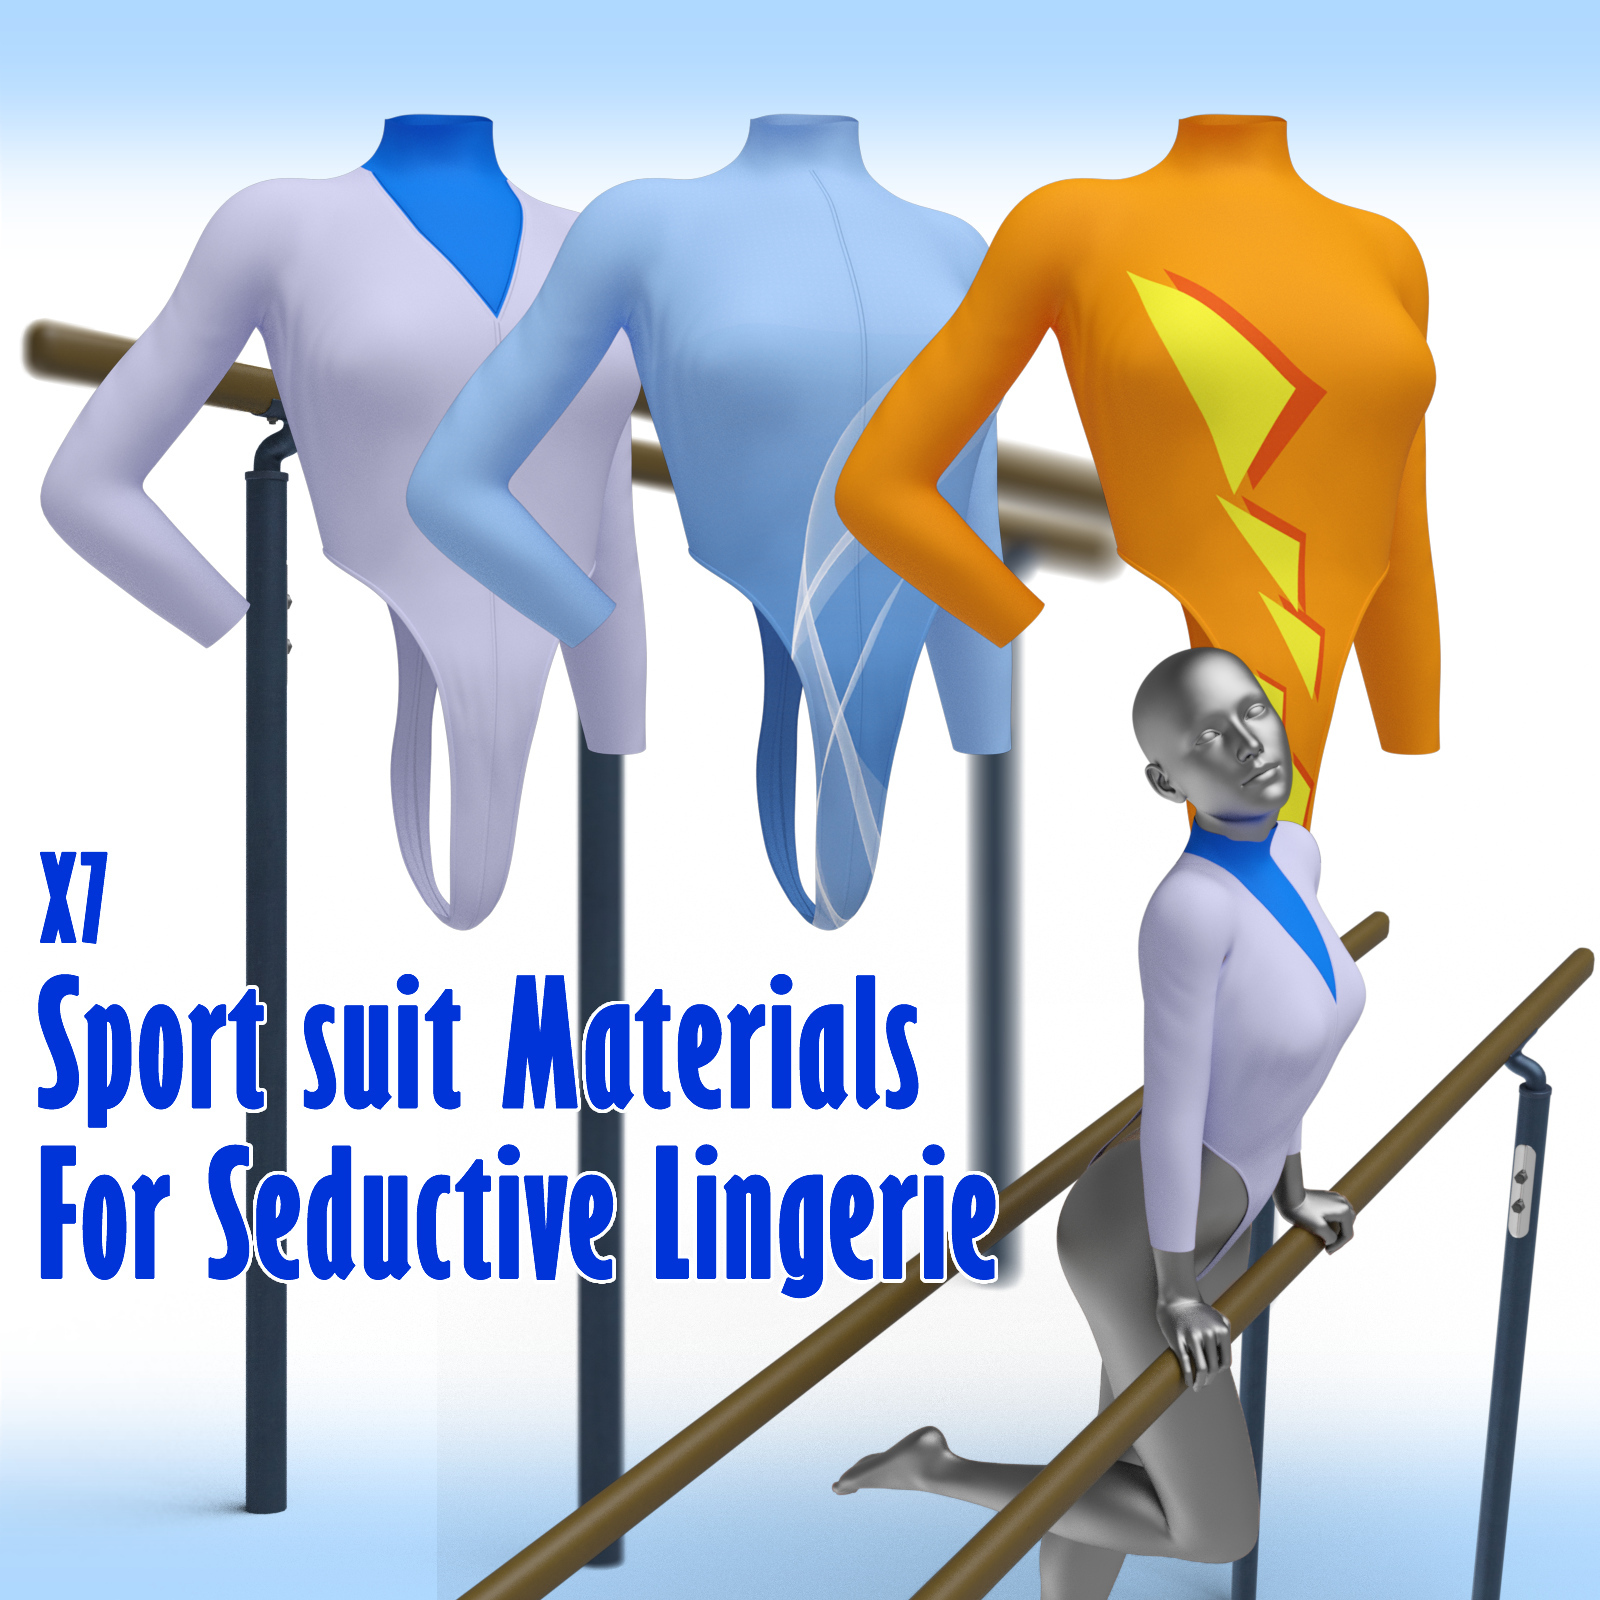 x7 Sport suit Materials For Seductive Lingerie